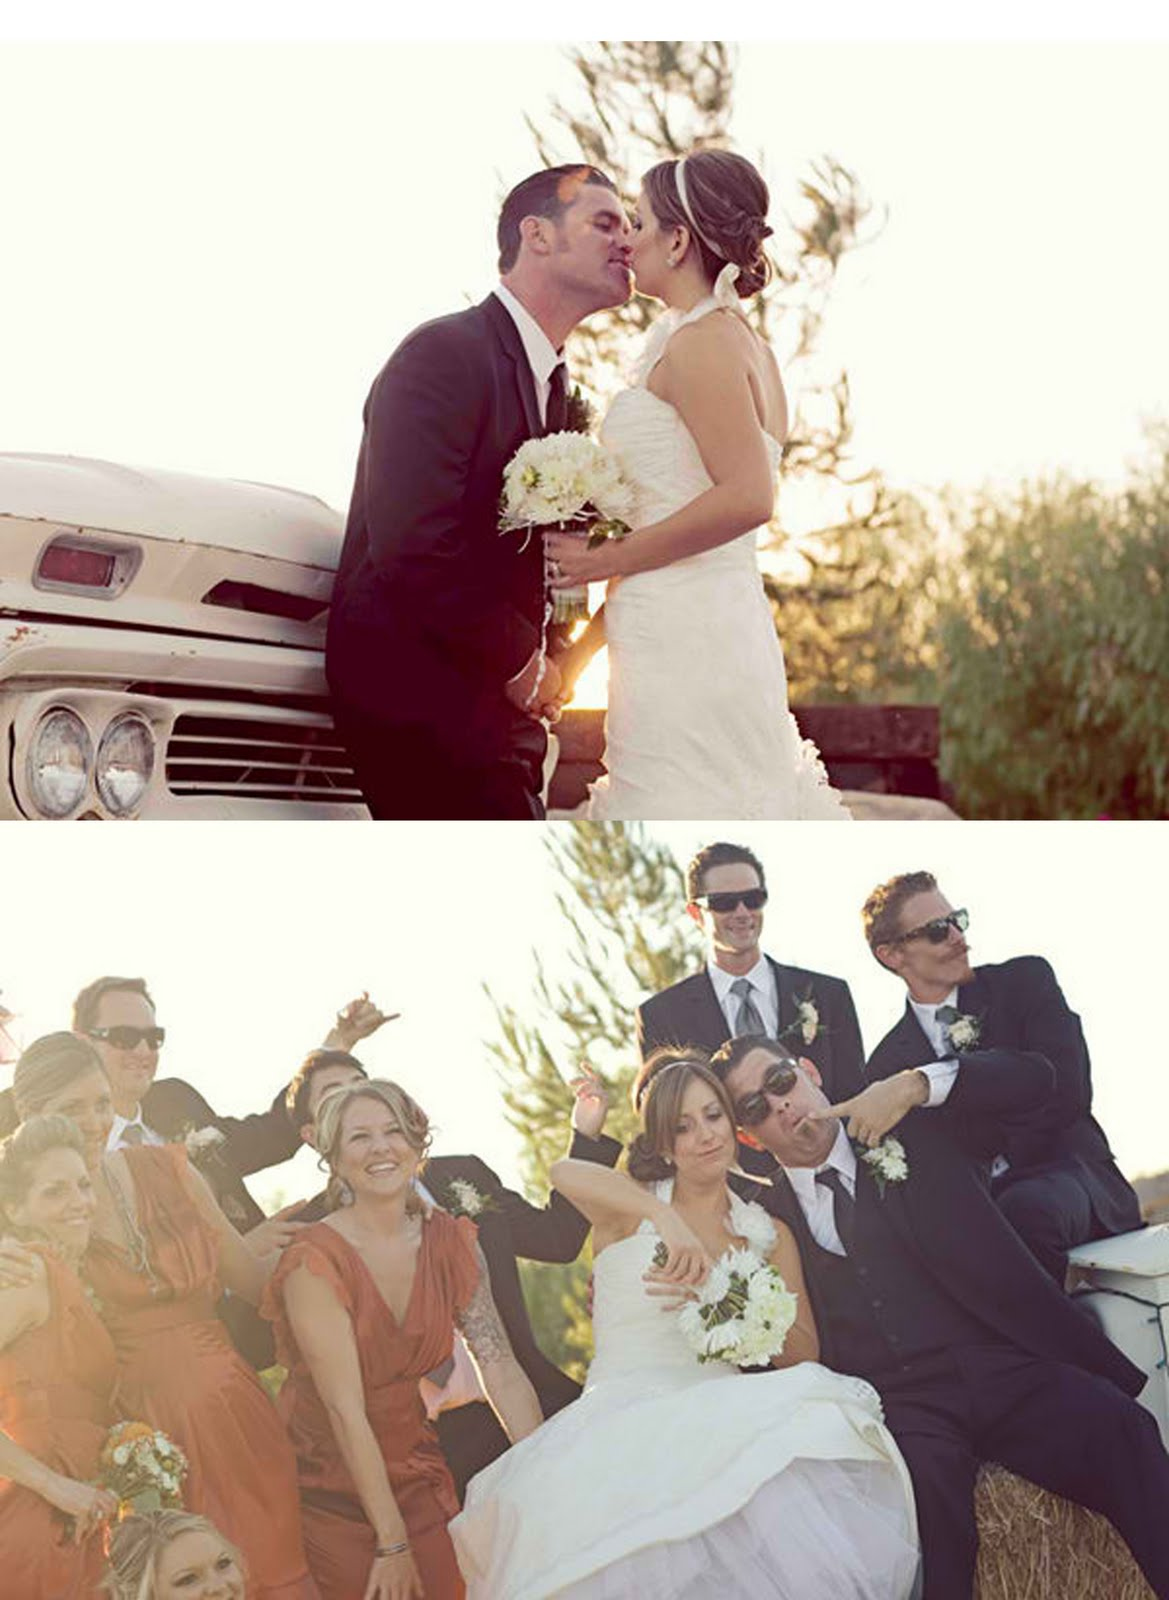 {looooove this wedding